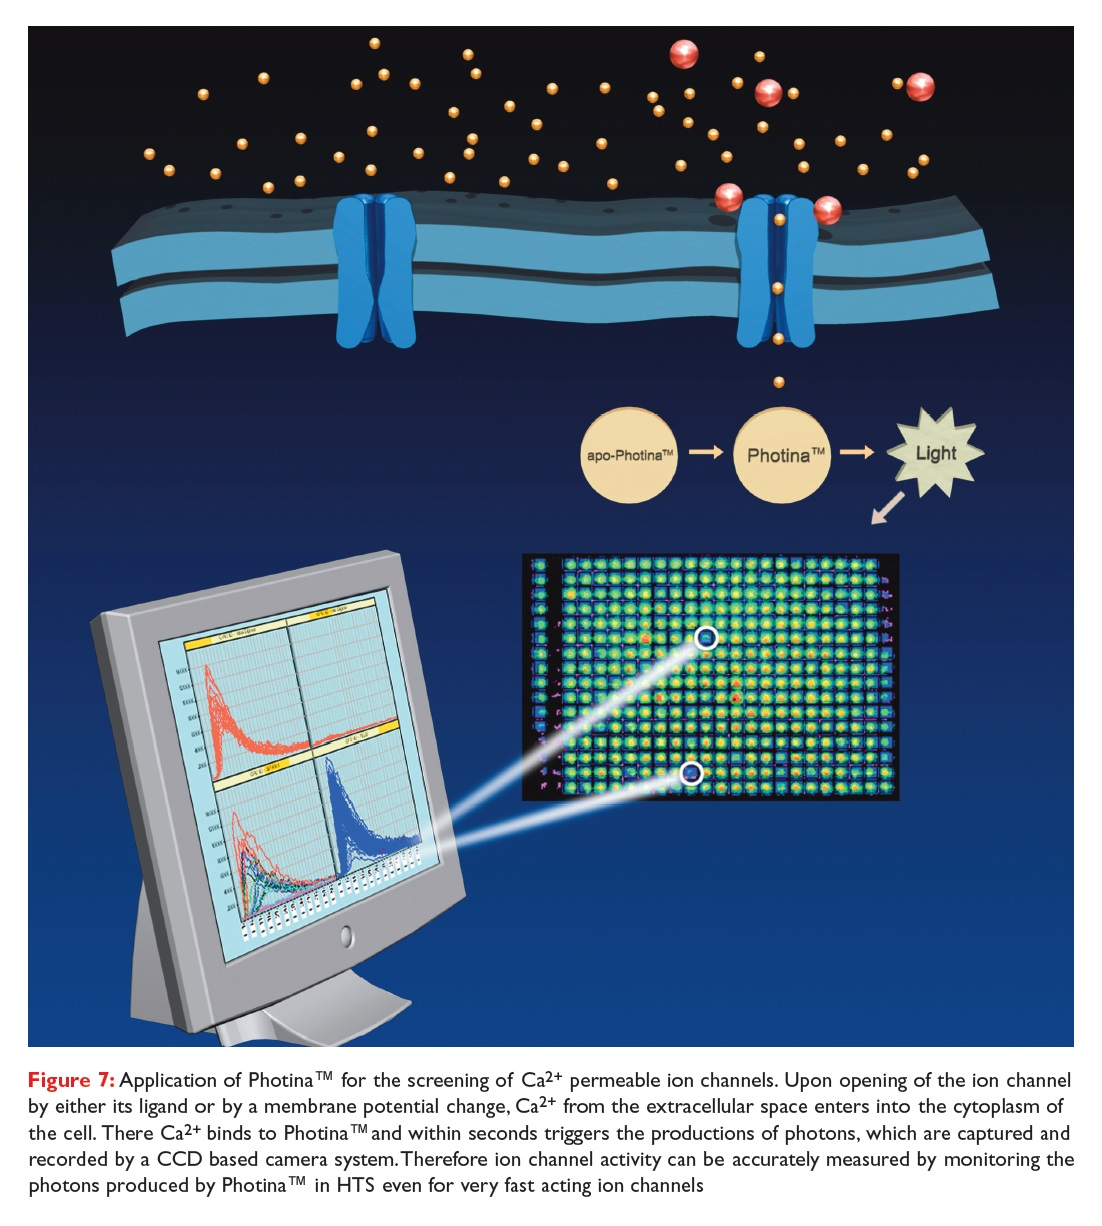 Figure 7 Application of Photina for the screening of Ca2+ permeable ion channels